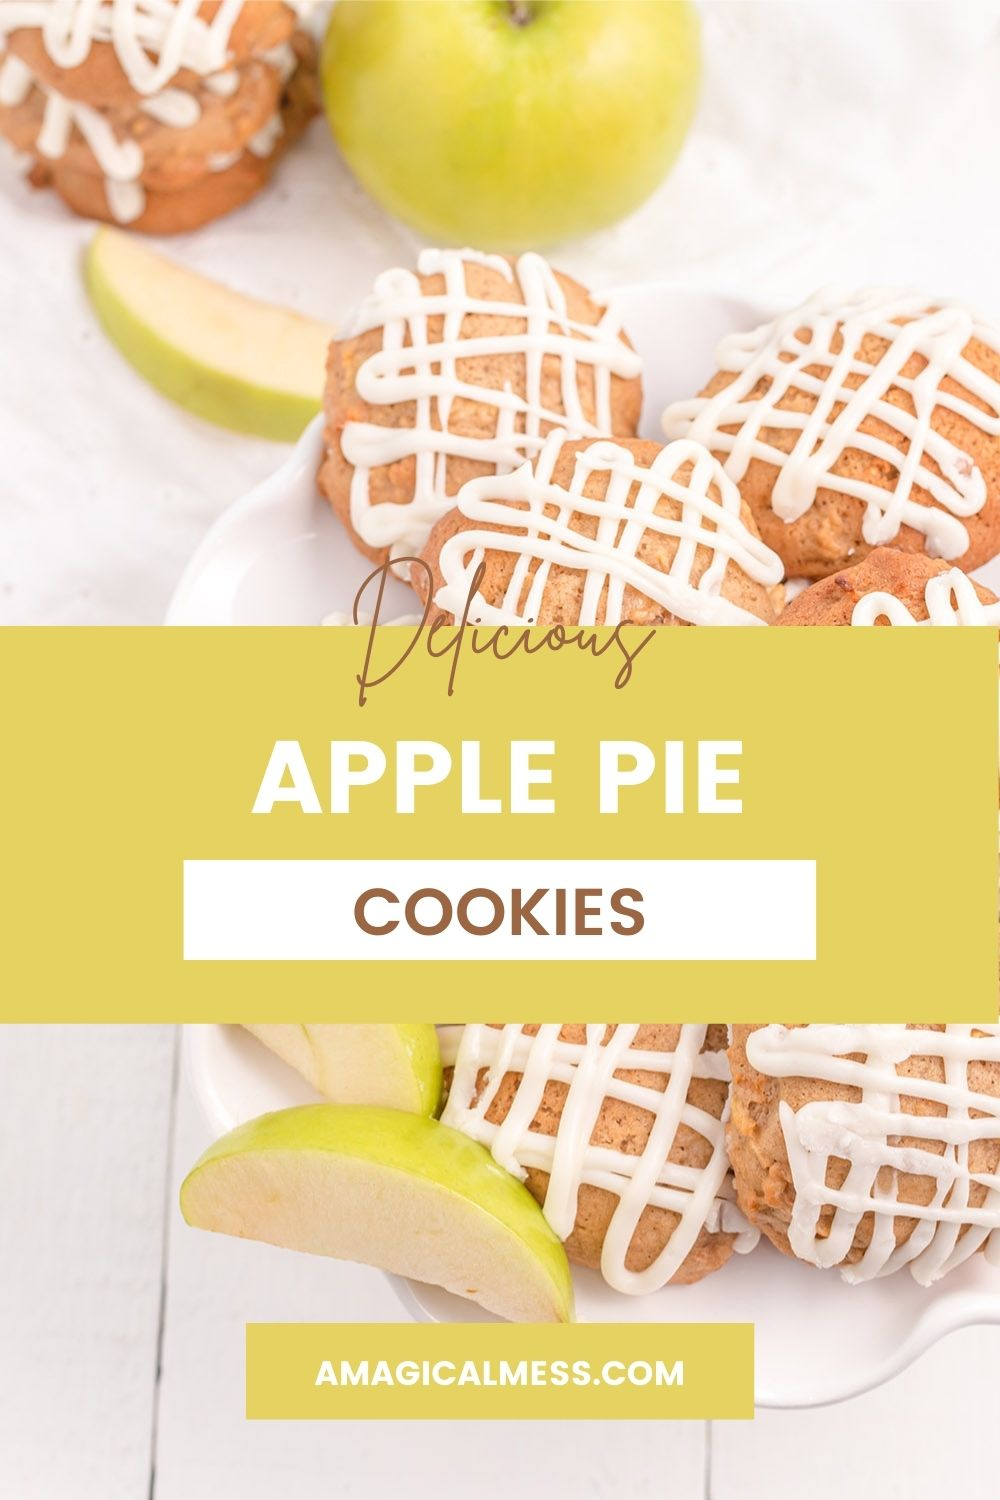 Apple pie cookies with glaze next to green apple slices.